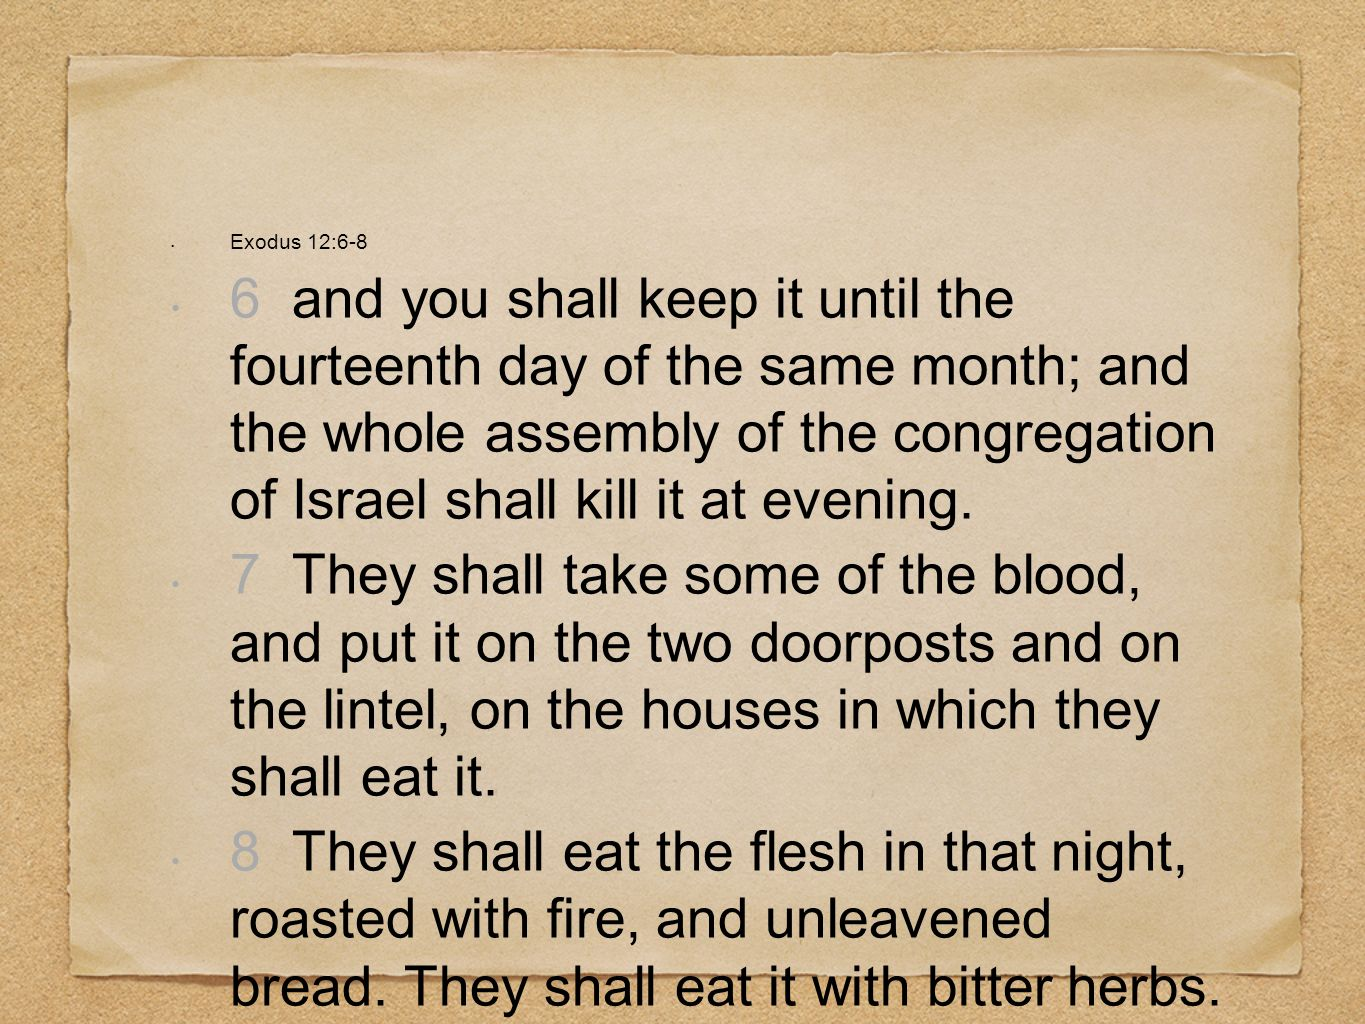 Exodus 12:6-8 6 and you shall keep it until the fourteenth day of the same month; and the whole assembly of the congregation of Israel shall kill it a